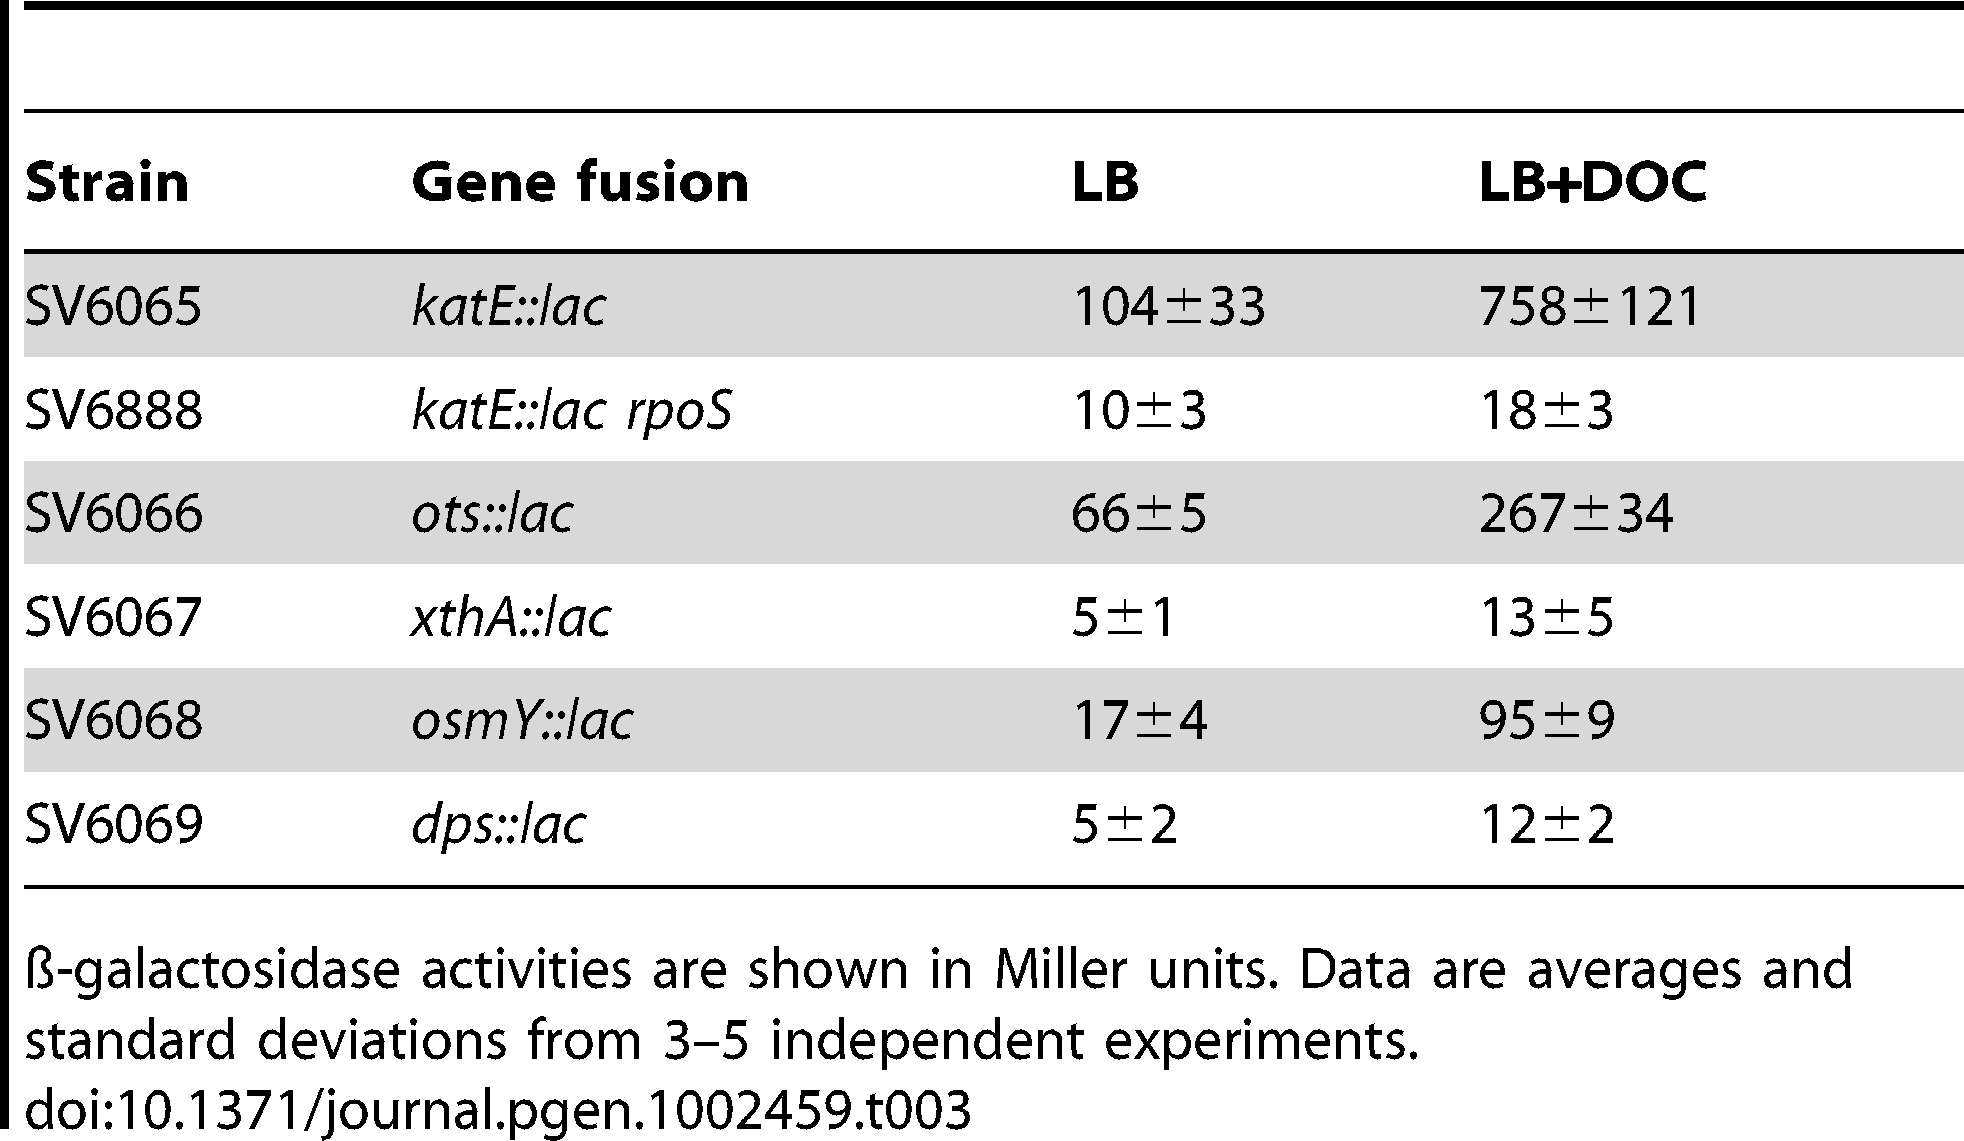 ß-galactosidase activities of <i>lac</i> fusions in RpoS-regulated genes in the presence and in the absence of 5% sodium deoxycholate during exponential growth.